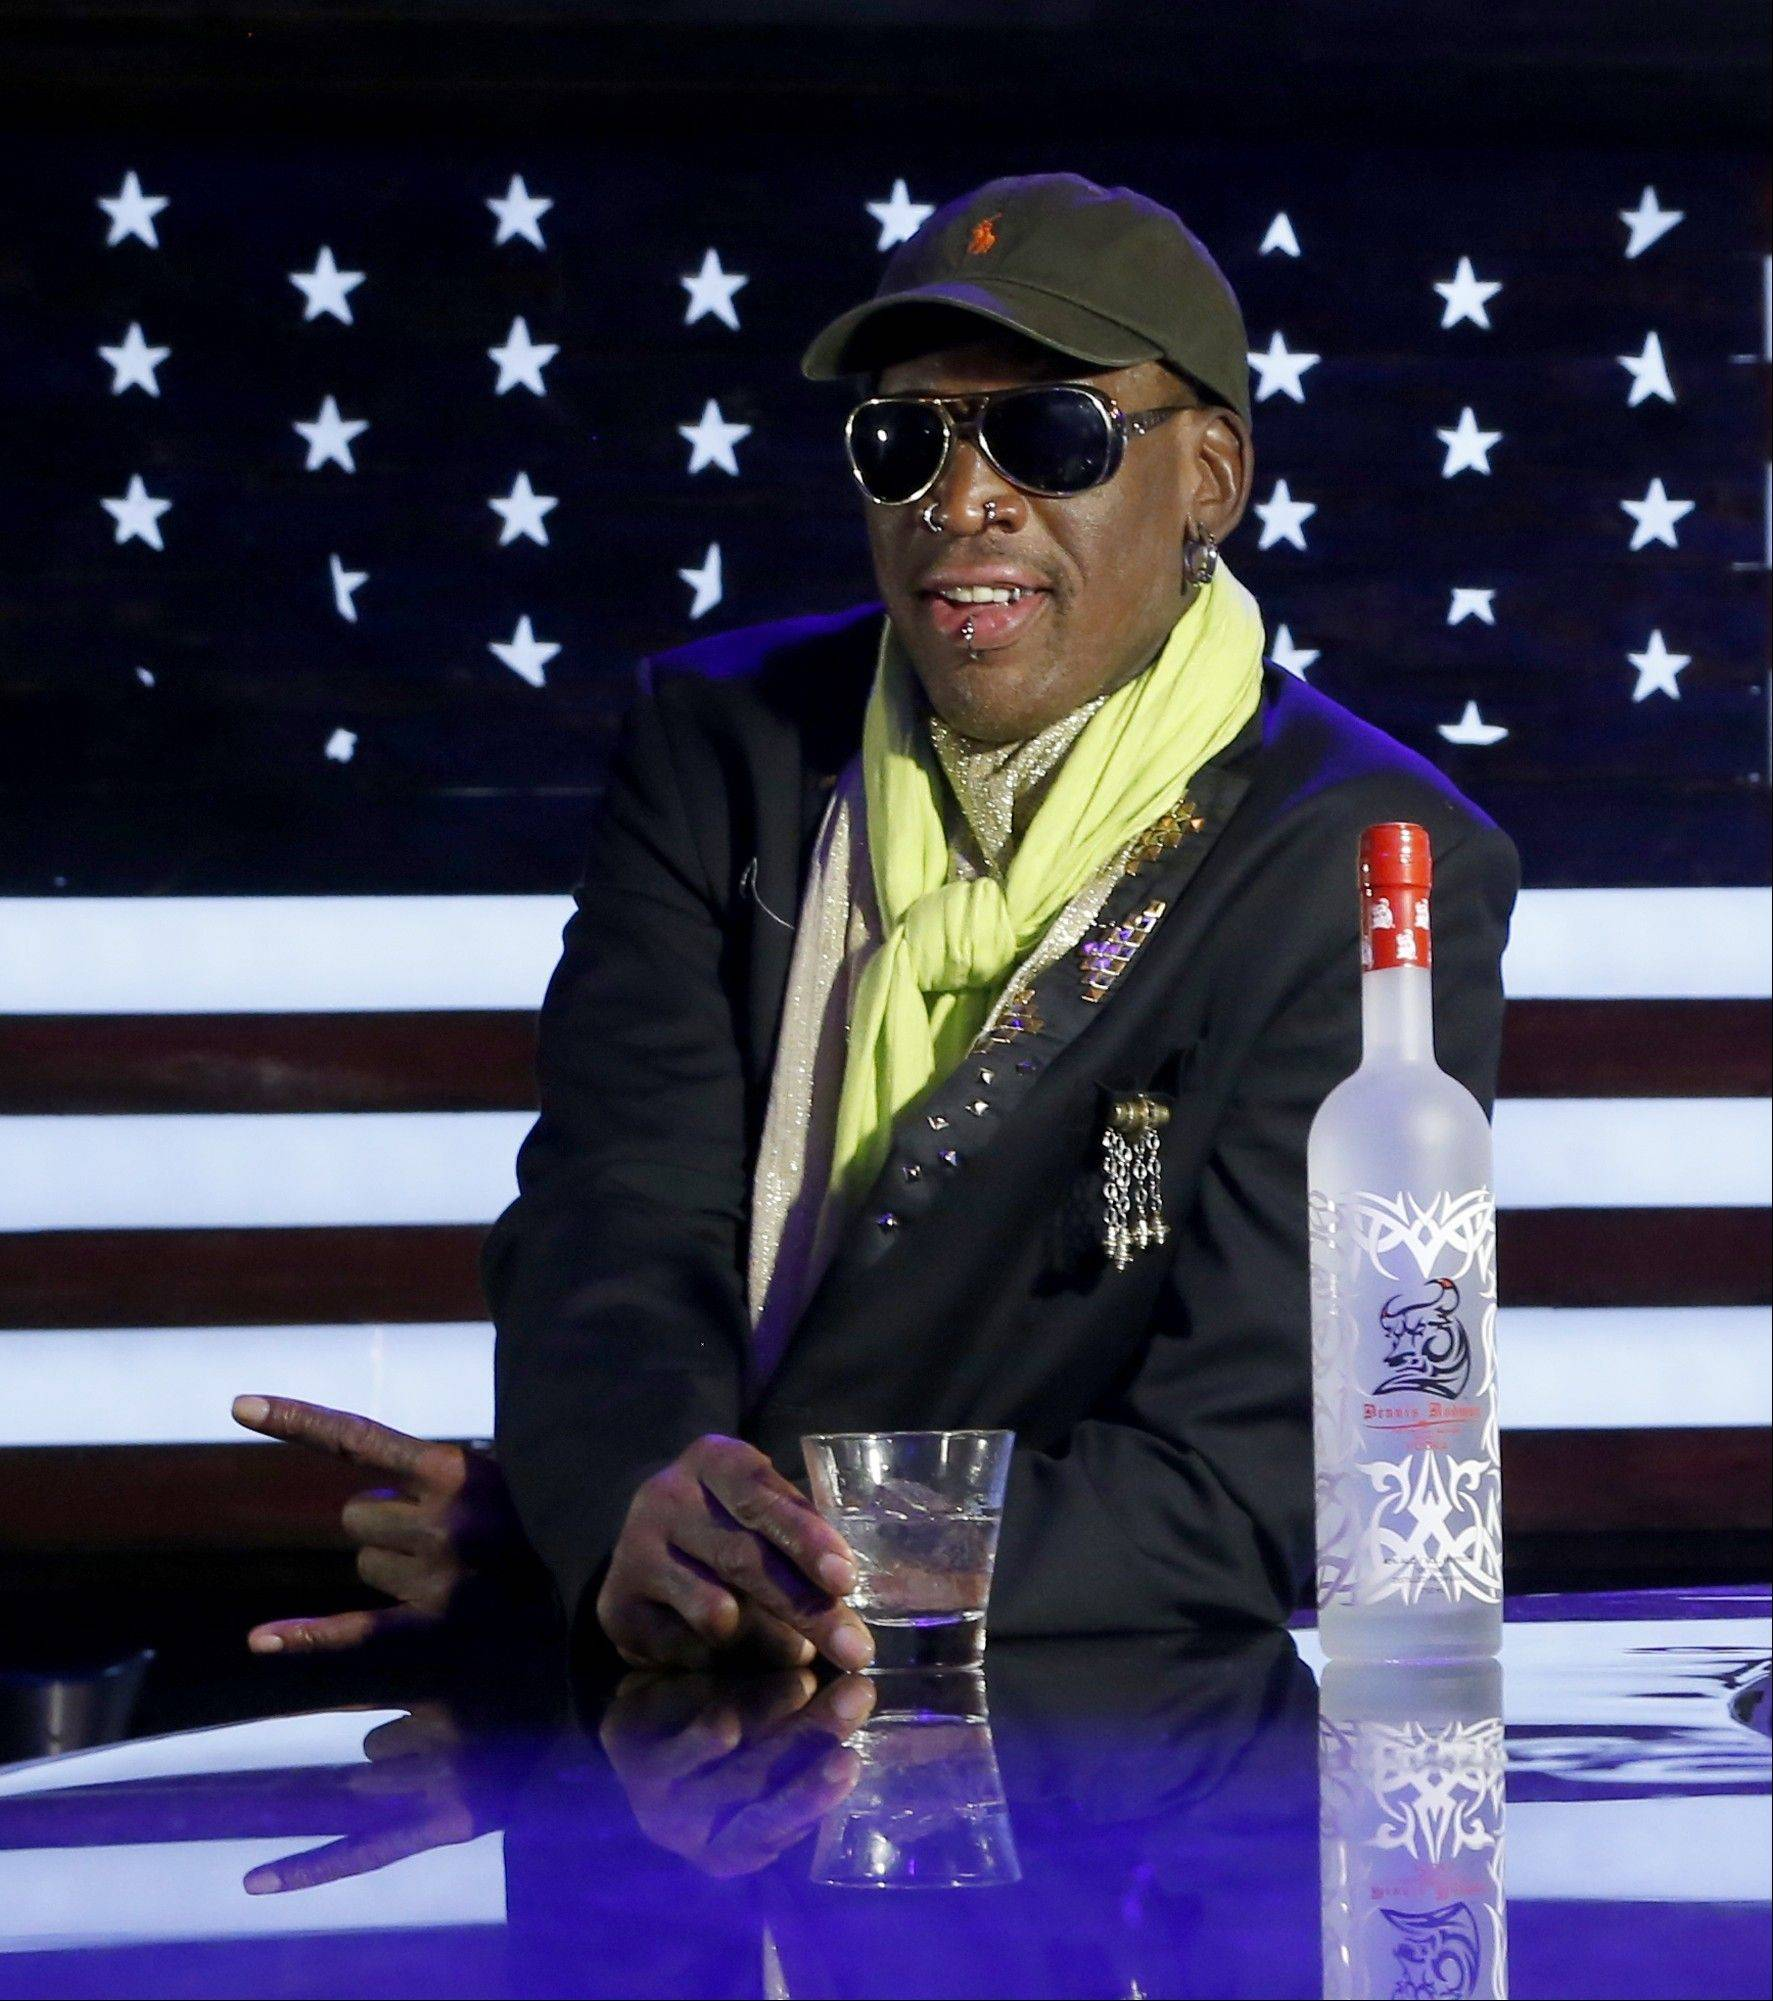 Dennis Rodman poses during a promotional event to pitch a vodka brand after a launch party Thursday in Chicago.